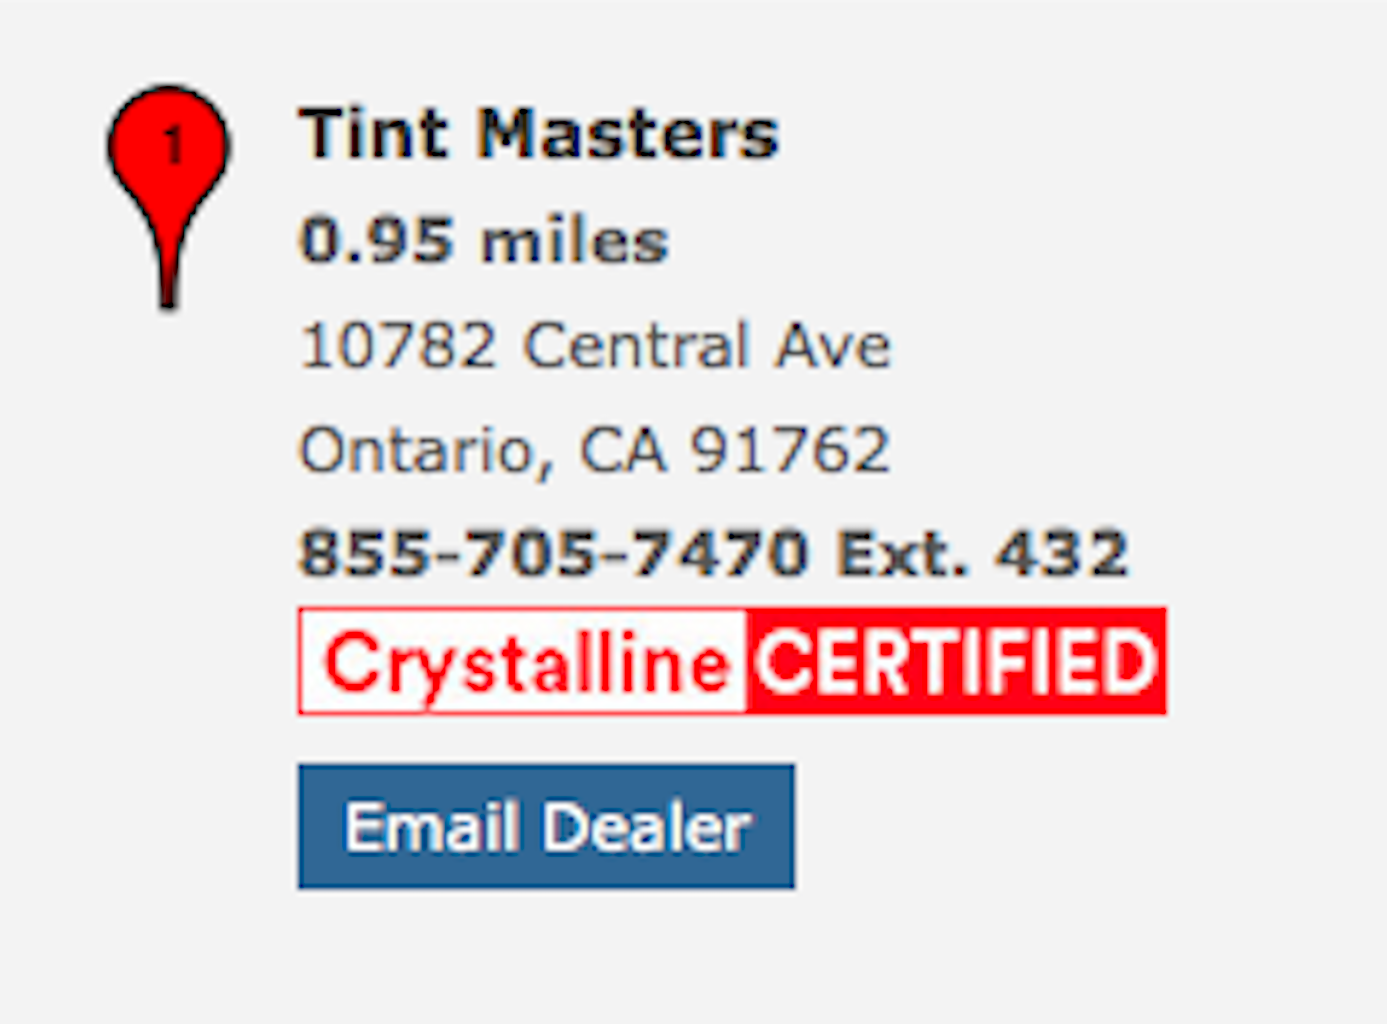 We are your premier Crystalline Certified 3M Authorized Dealer!